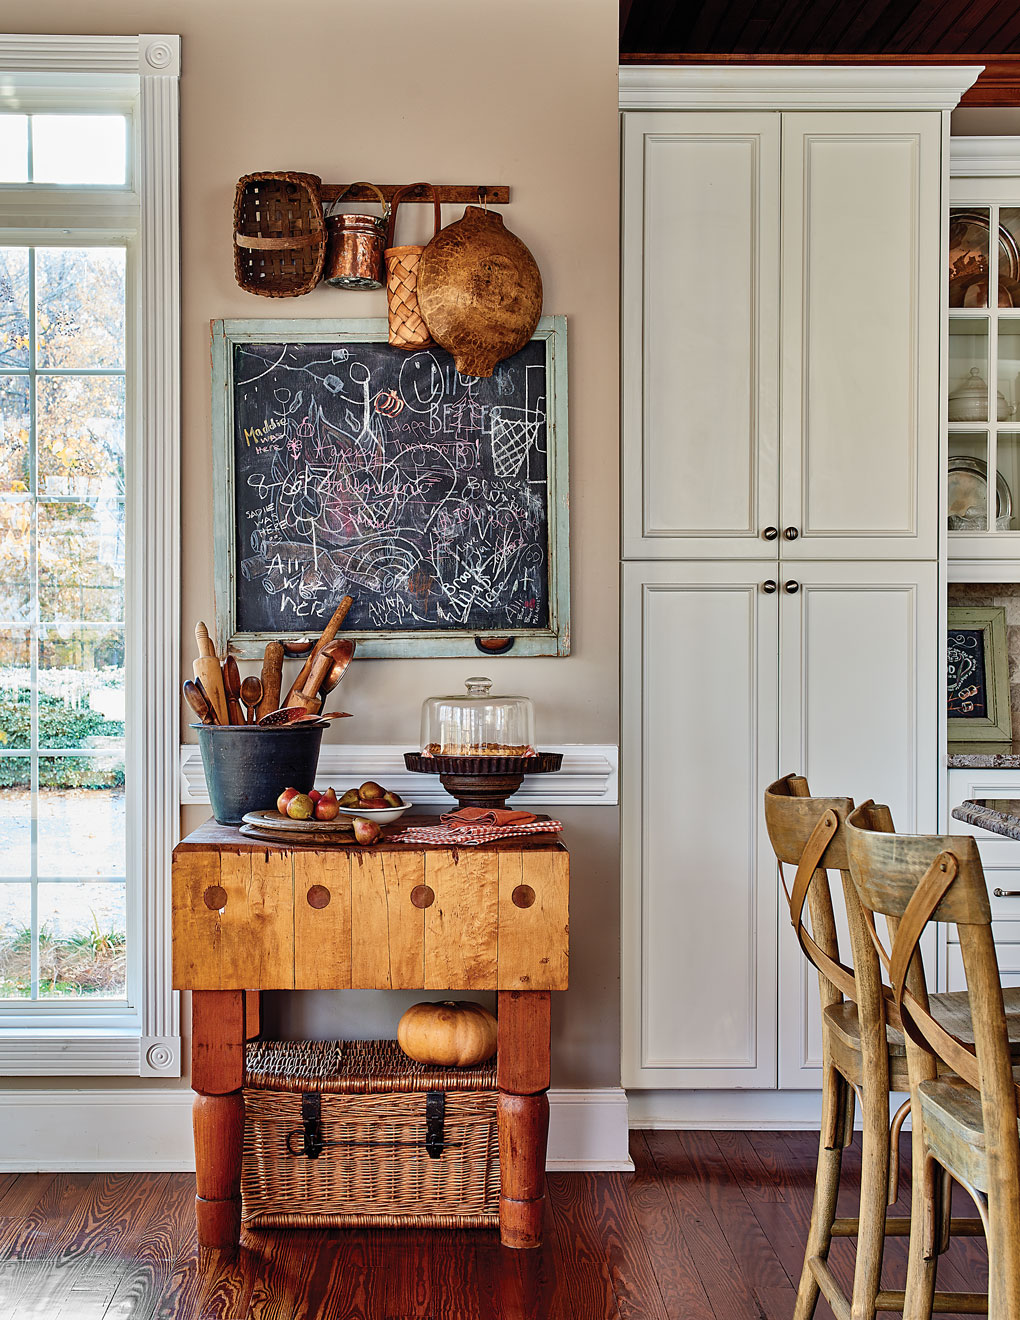 Antique butcher block in the kitchen surrounded by vintage baskets and kitchen tools and a chalkboard converted from an old window screen.